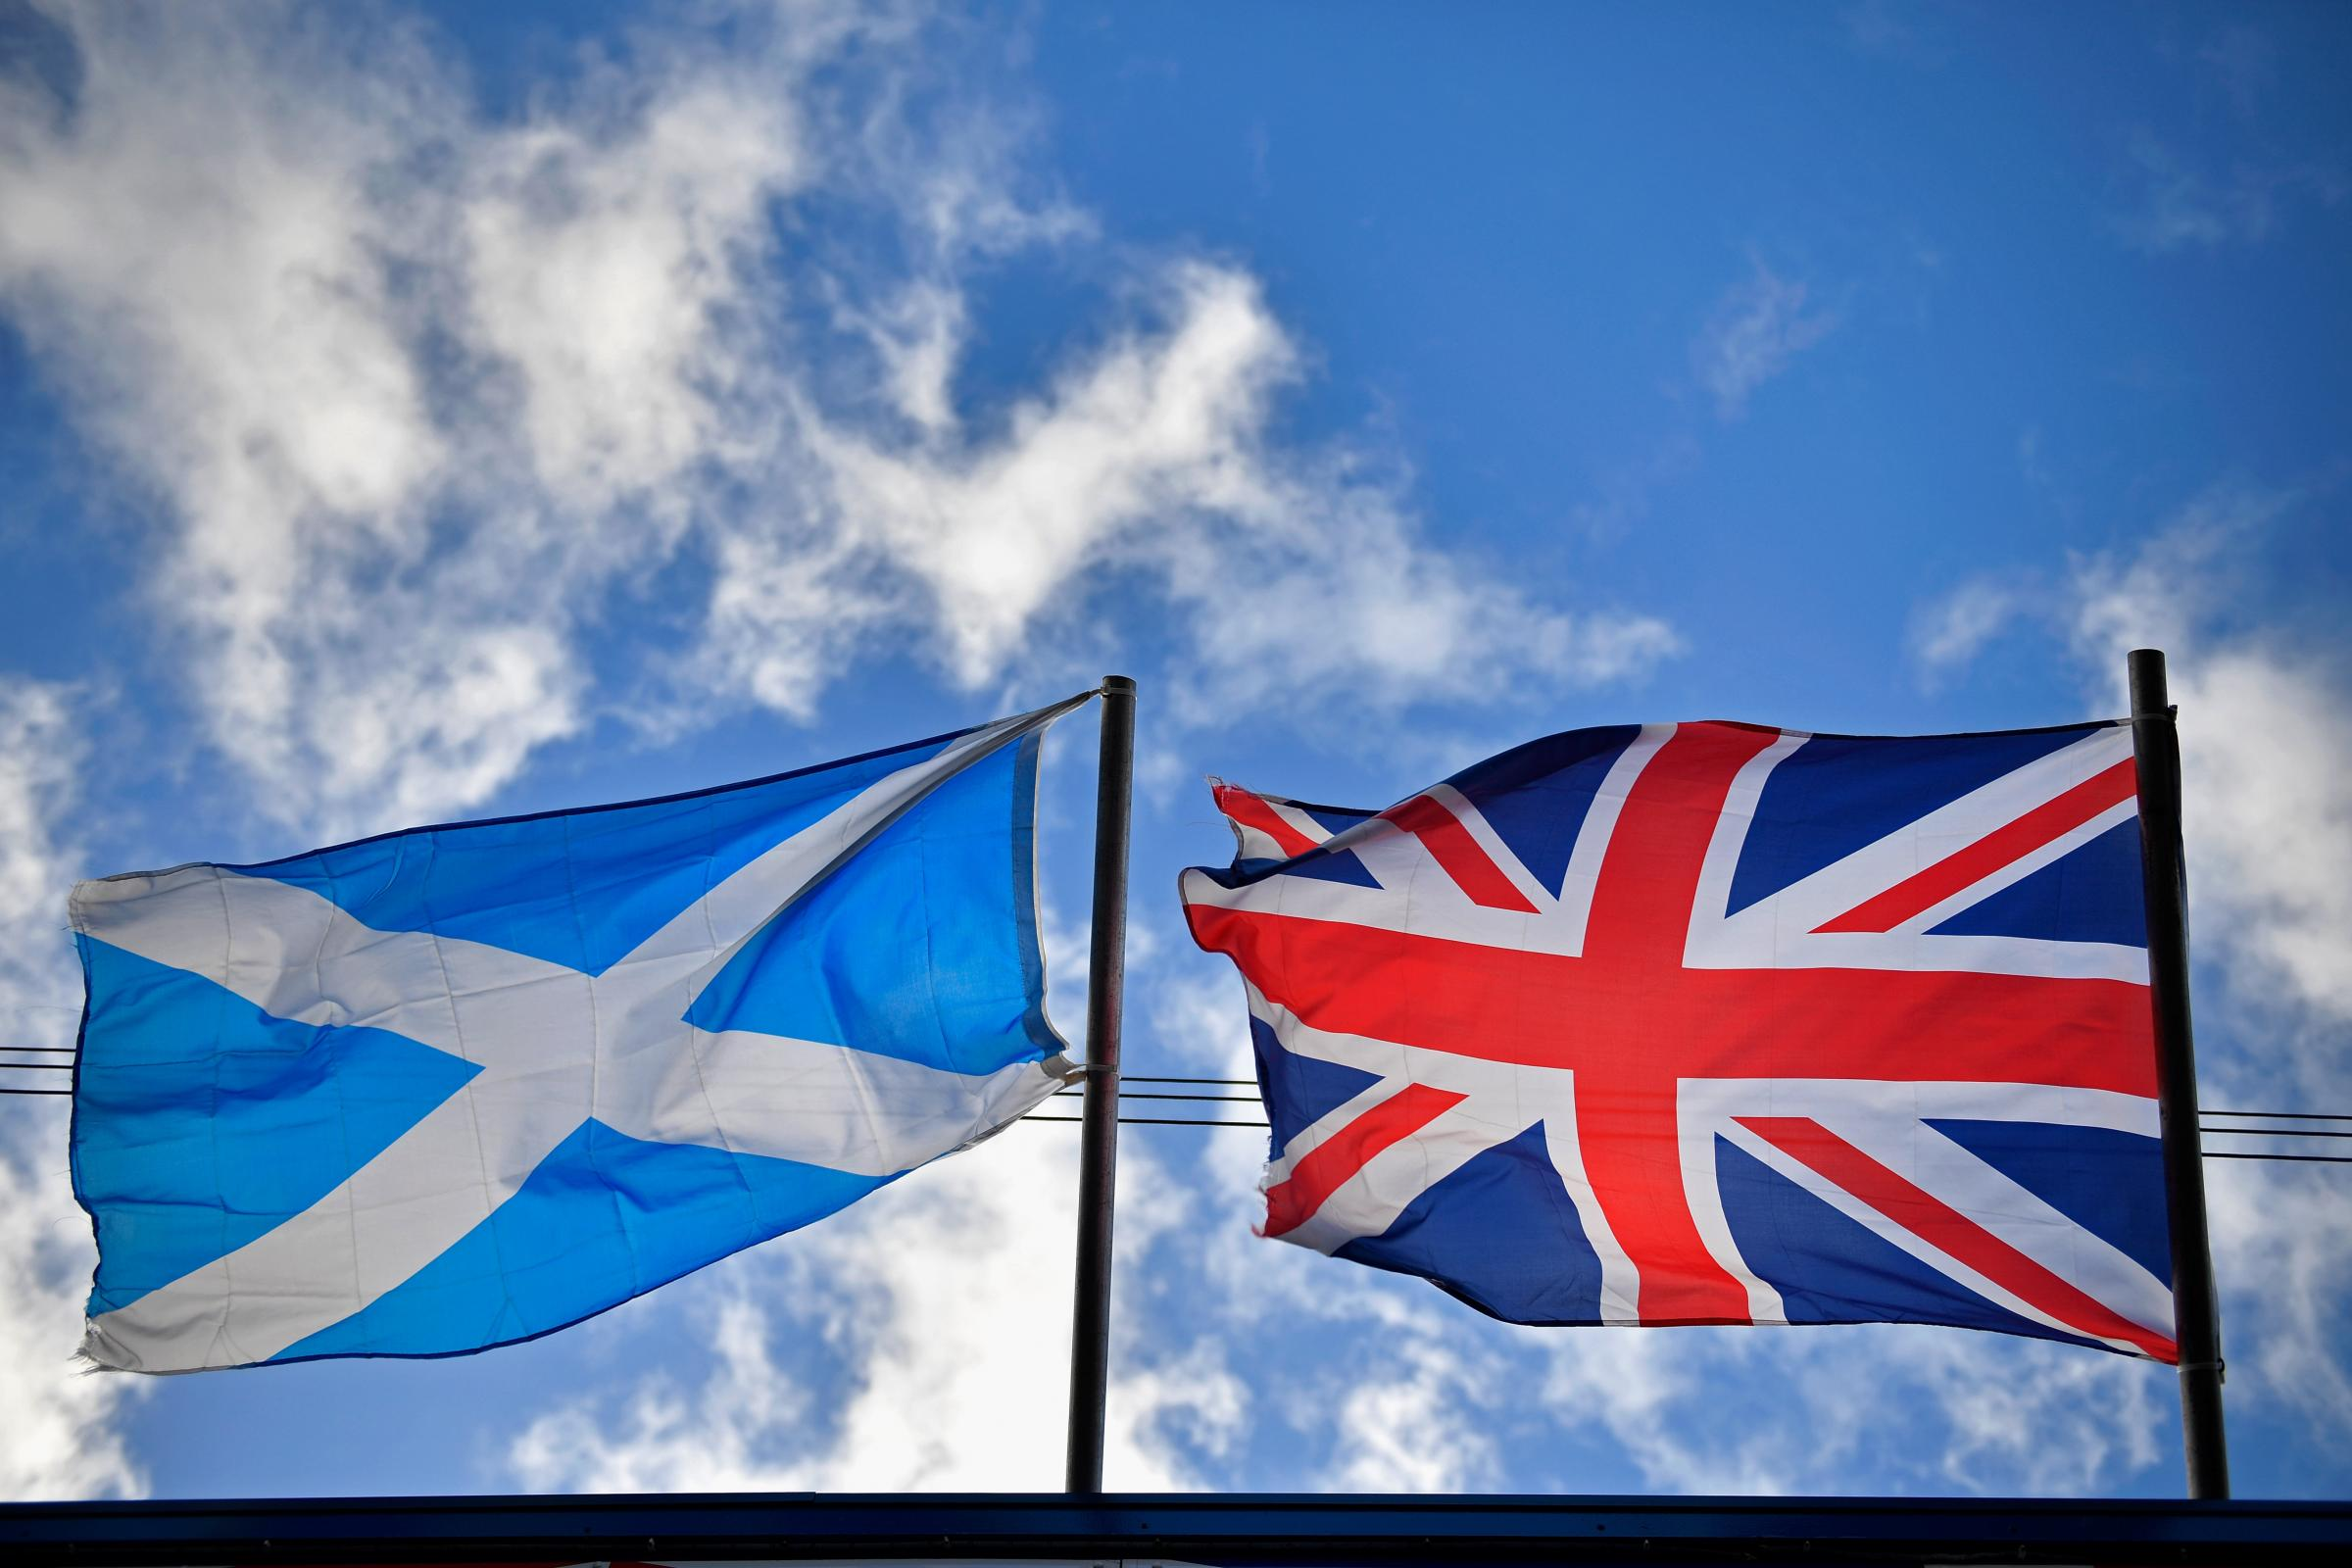 Flag expert: 'The use of the Union Jack has never been so positive in Scotland'